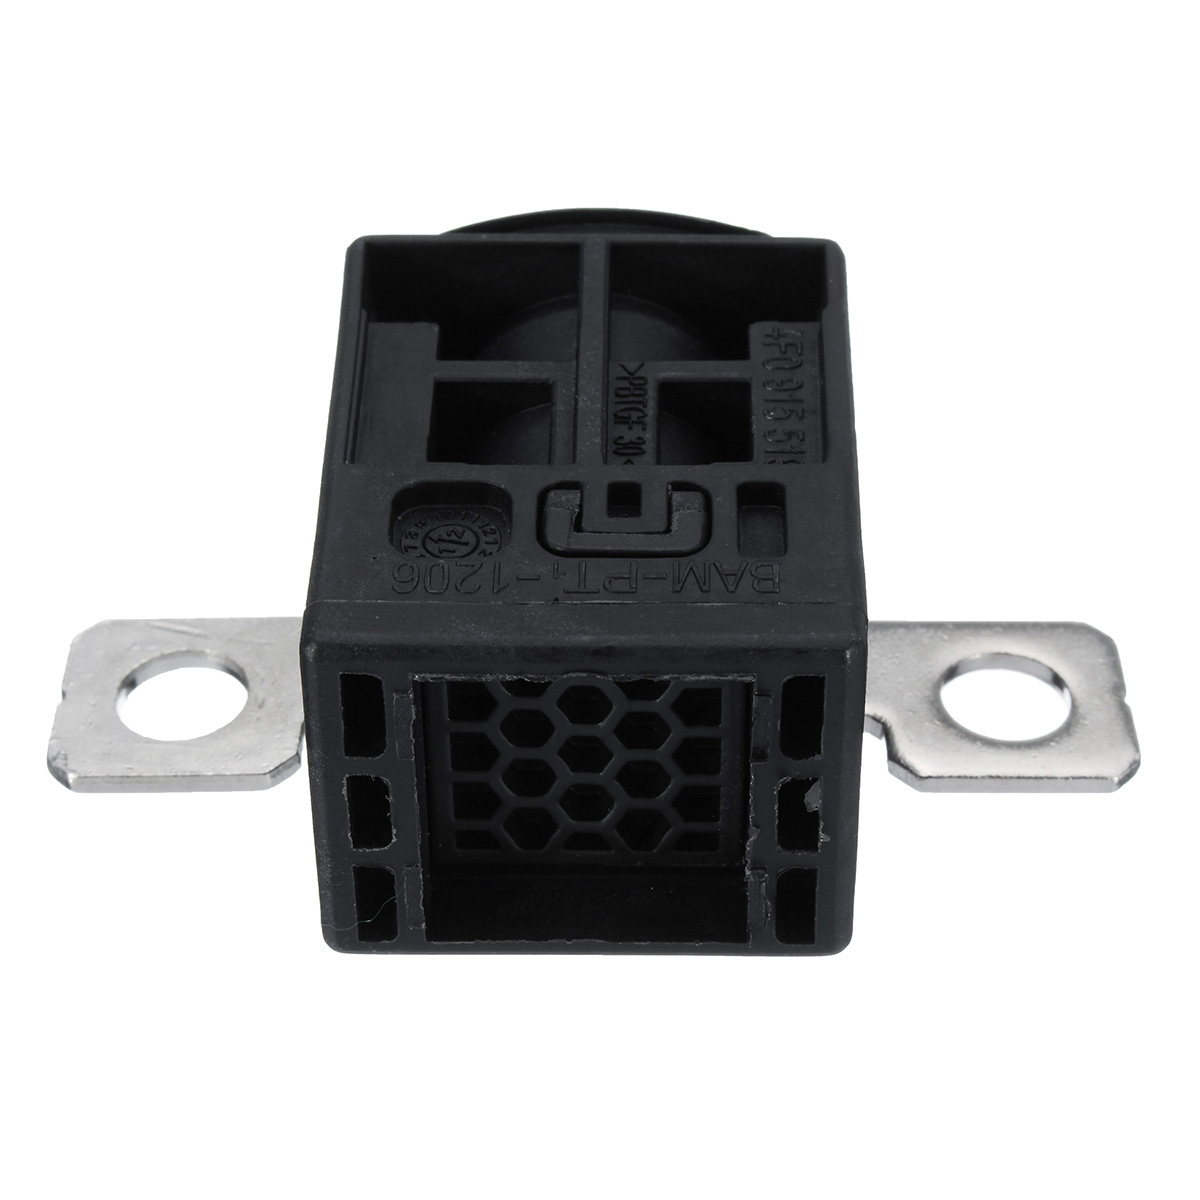 4F0915519 Battery Fuse Box Cut Off Overload Protection Trip For Audi Q5 A5 A7 A6 /VW /Skoda